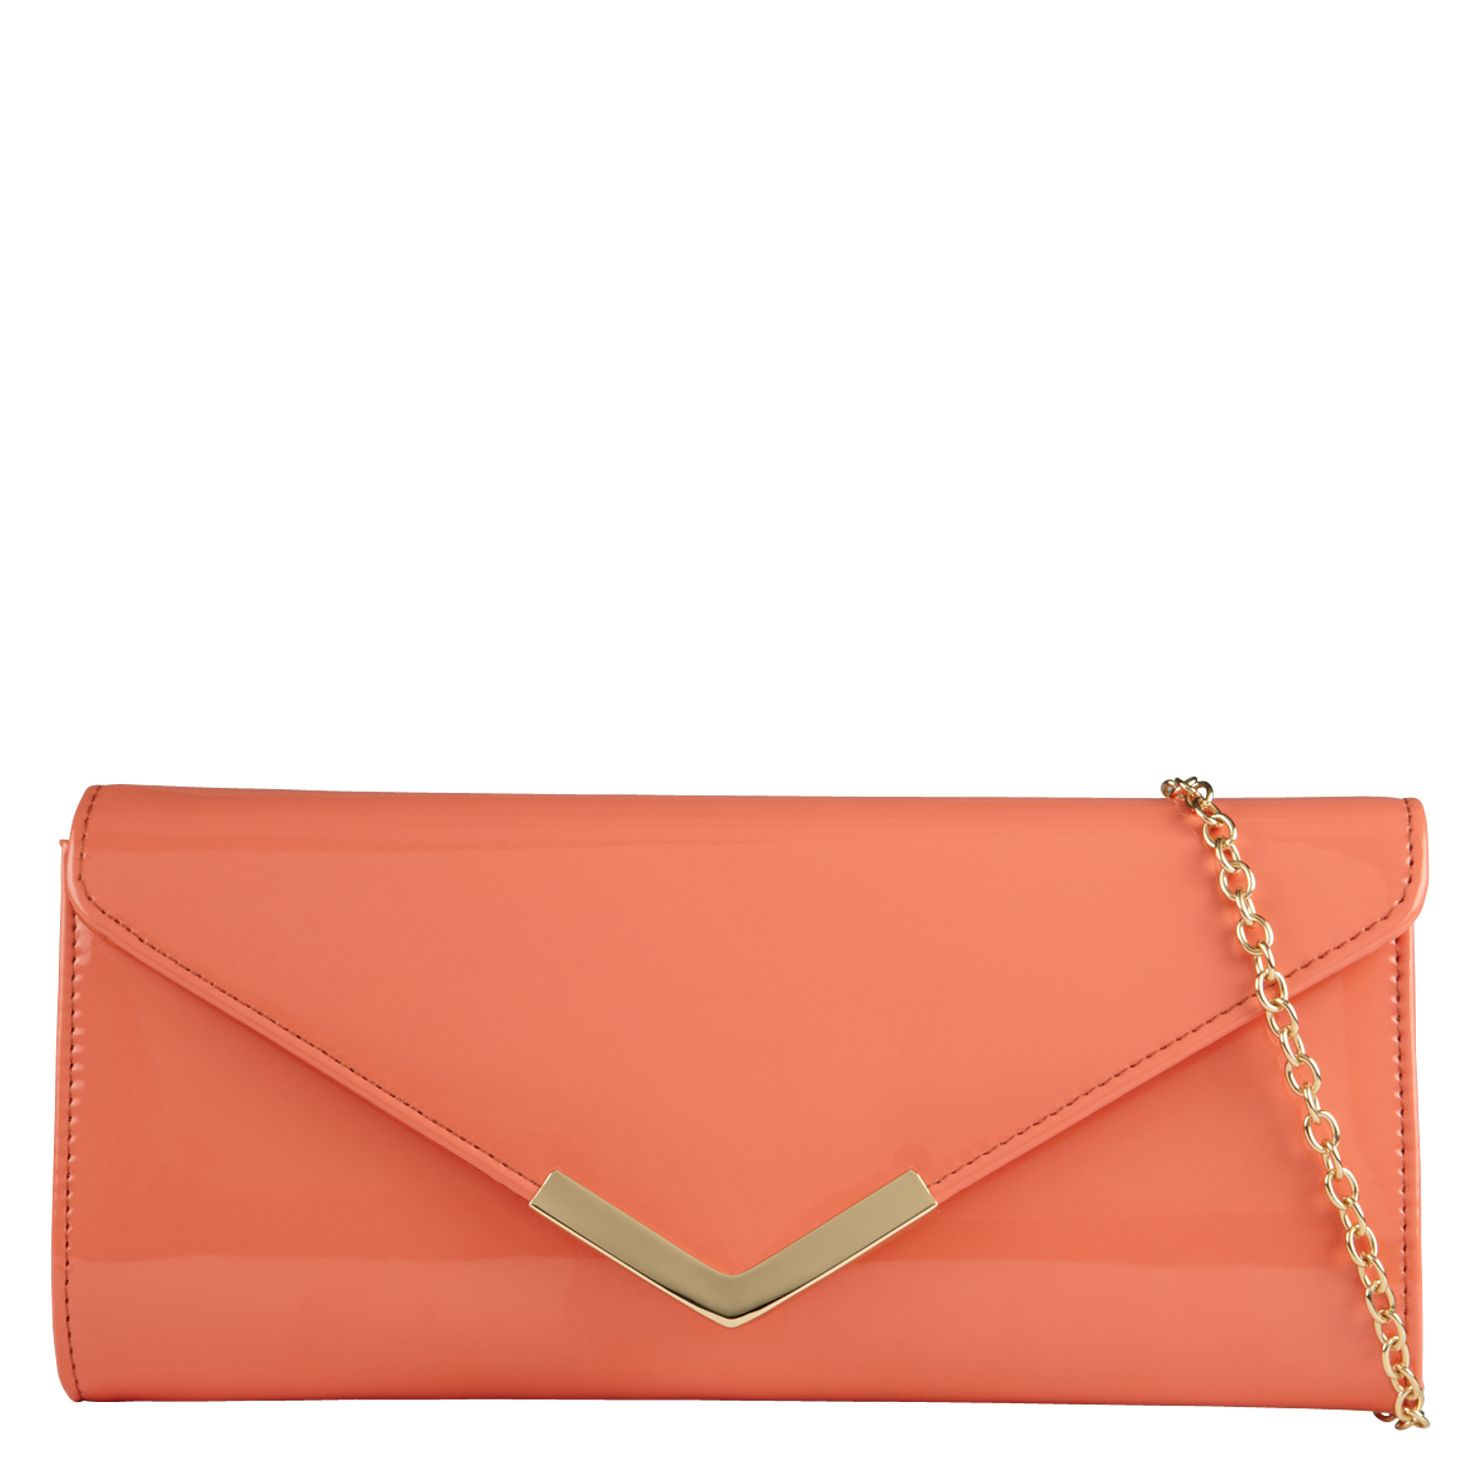 Gallington clutch bag